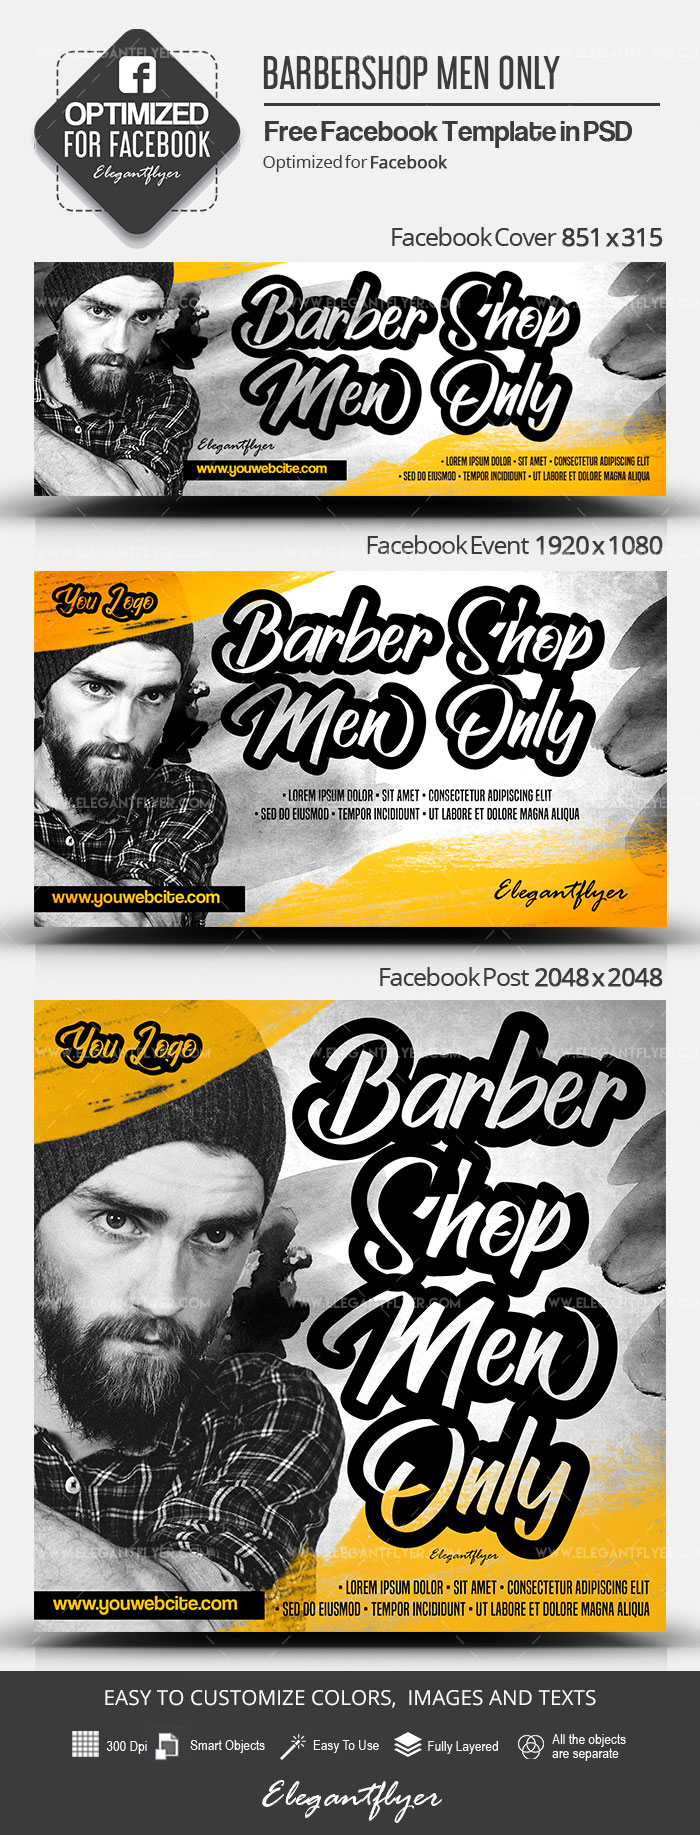 Barbershop Men Only – Free Facebook Cover Template in PSD + Post + Event cover